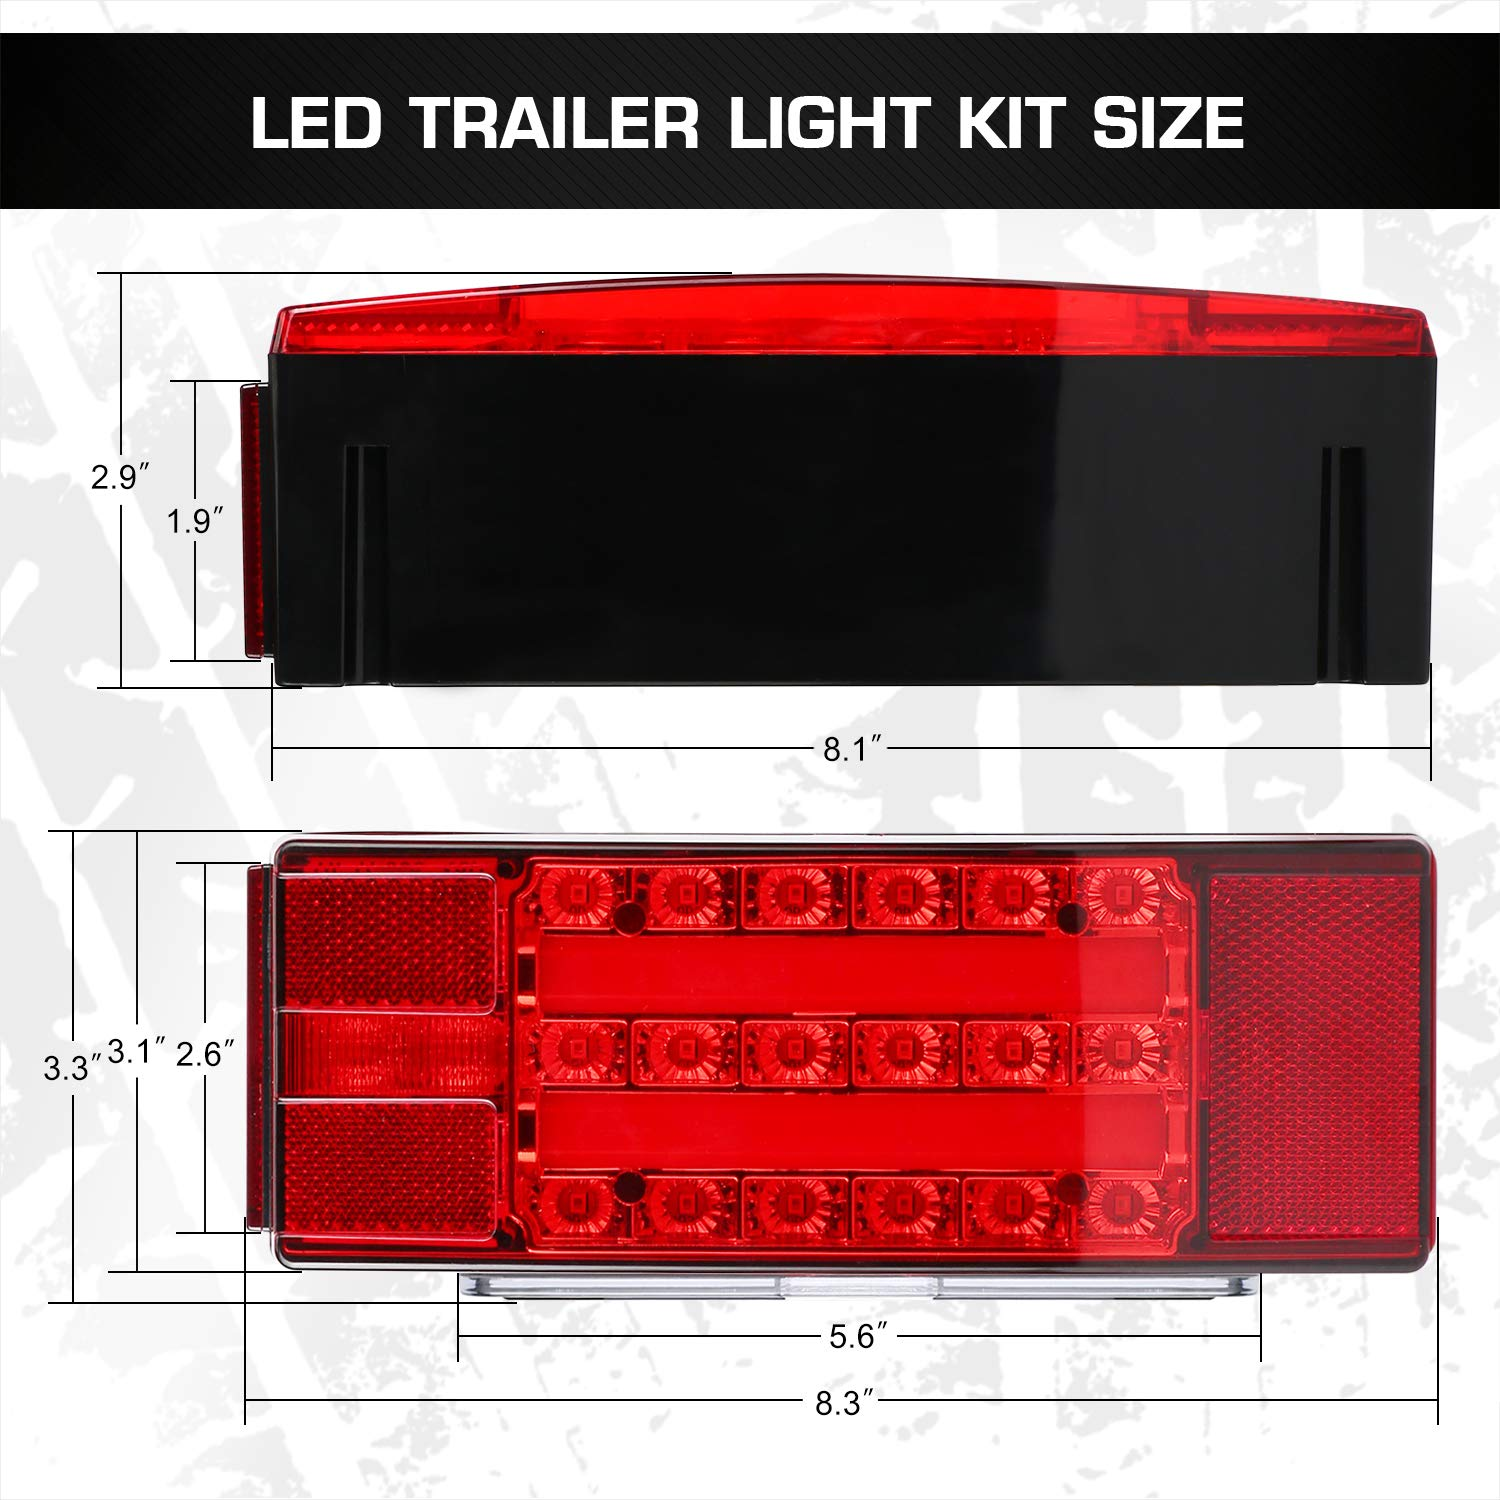 WoneNice LED Submersible Trailer Tail Light Kit Square LED Trailer Lights Halo Glow with Wiring Harness Combined Stop Tail Lights Turn Indicator for Boat Trailer Vehicle RV Truck Caravan 12V